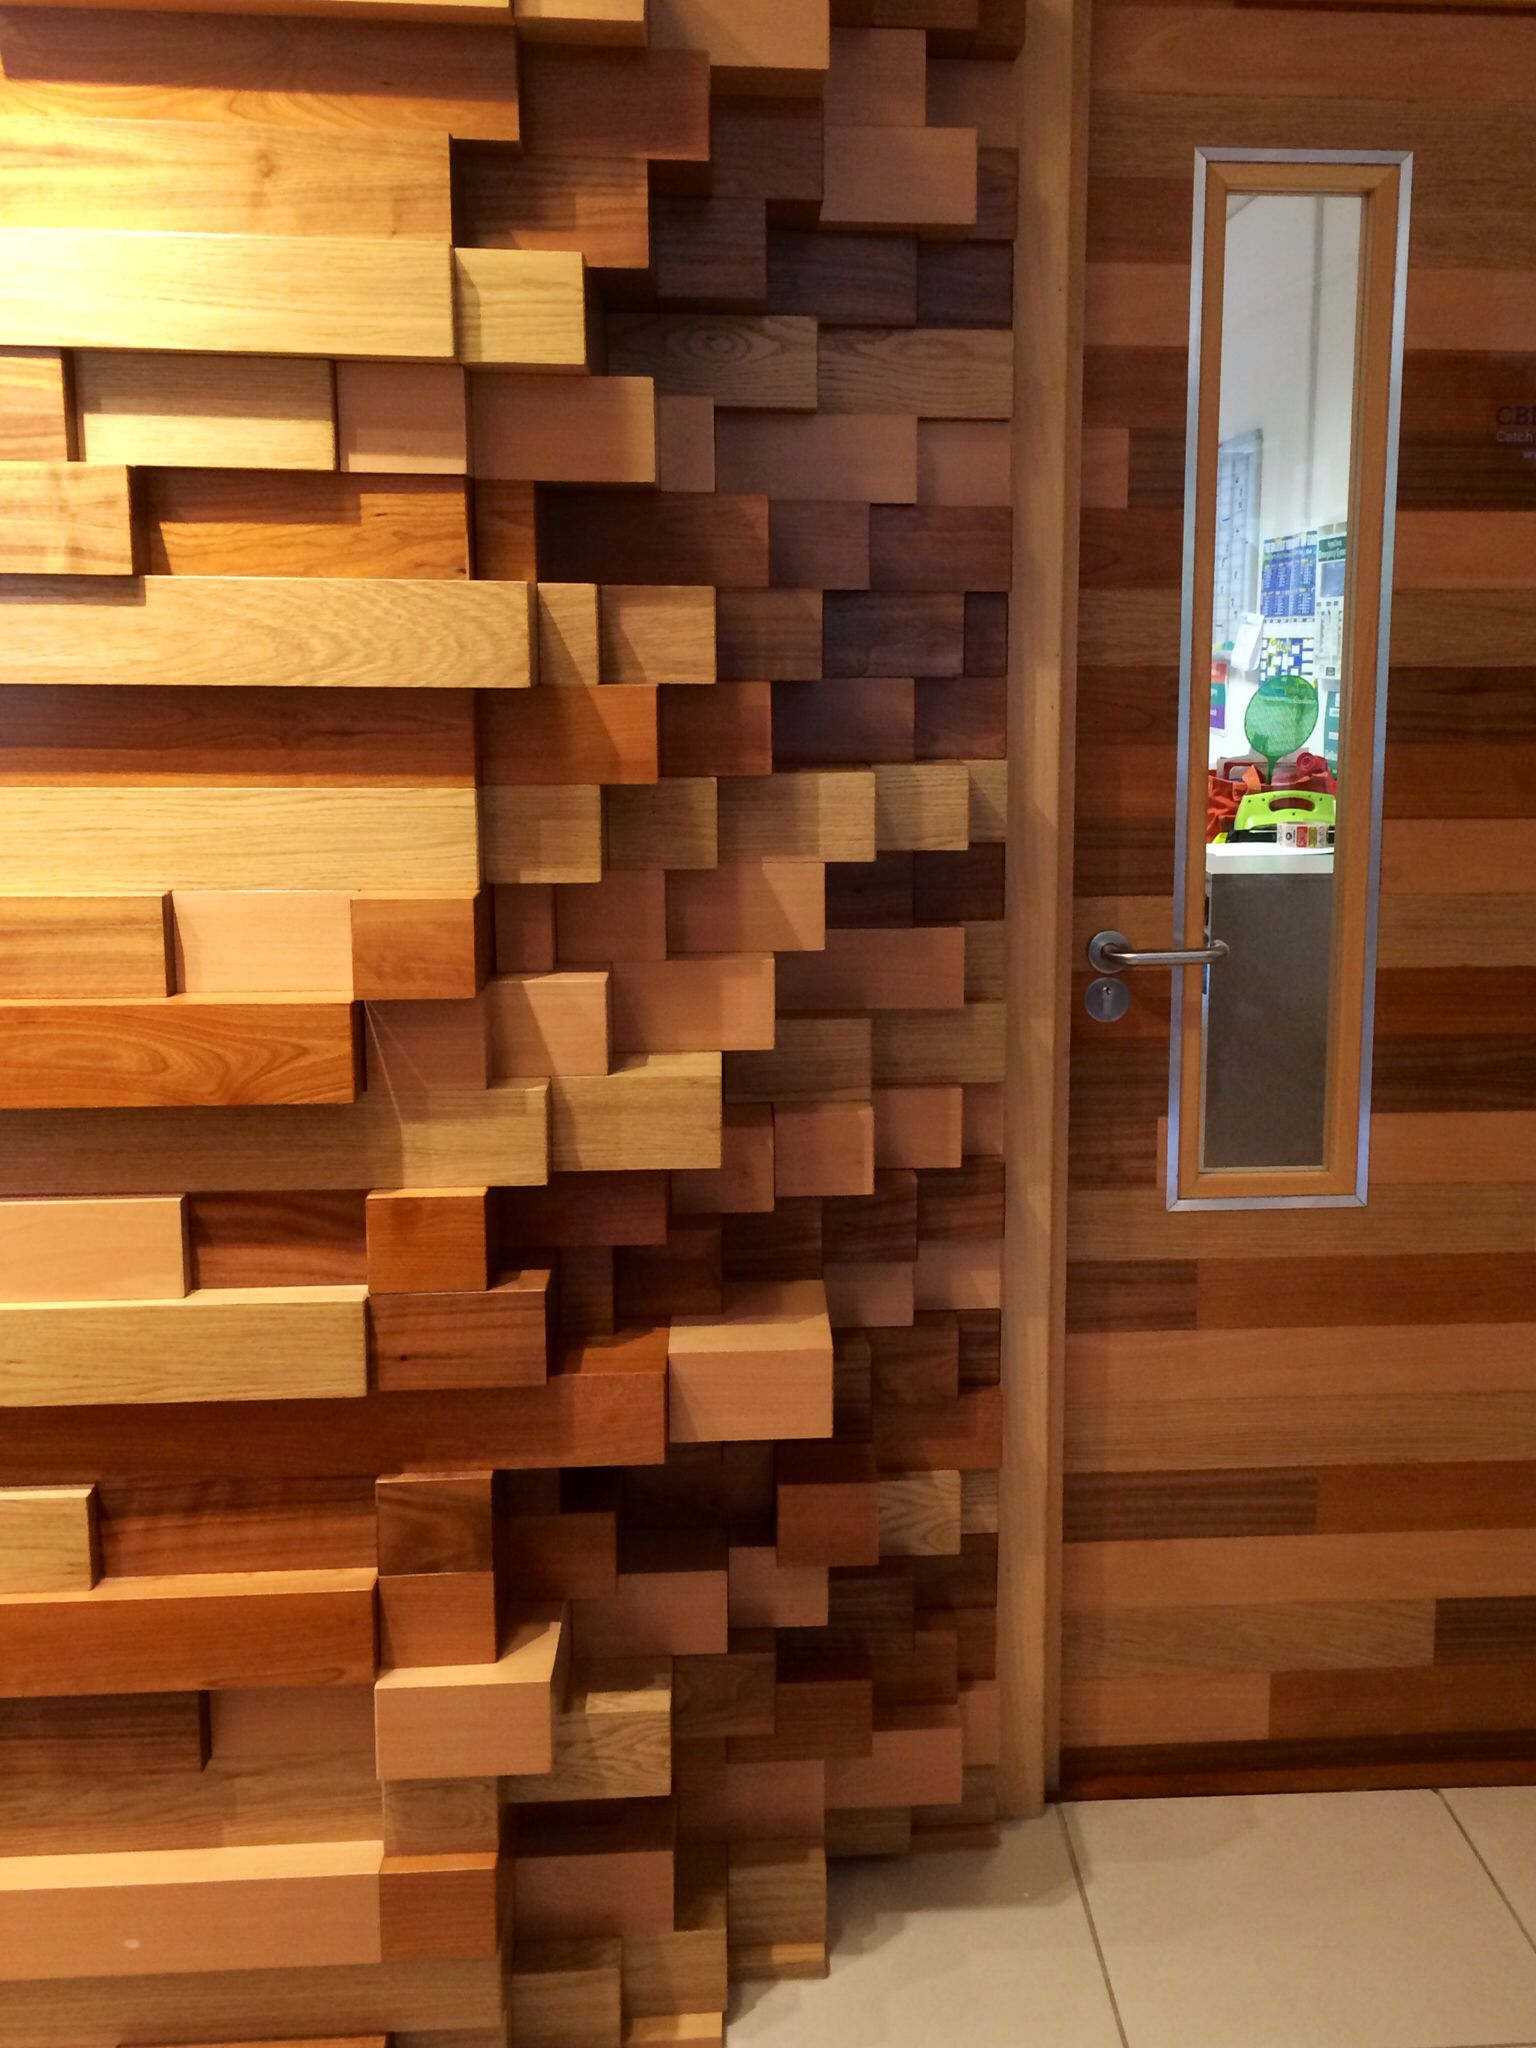 Wood Block Wall Bespoke Wood Block Wall Wood Mosaic Wall  Pinterest  Block